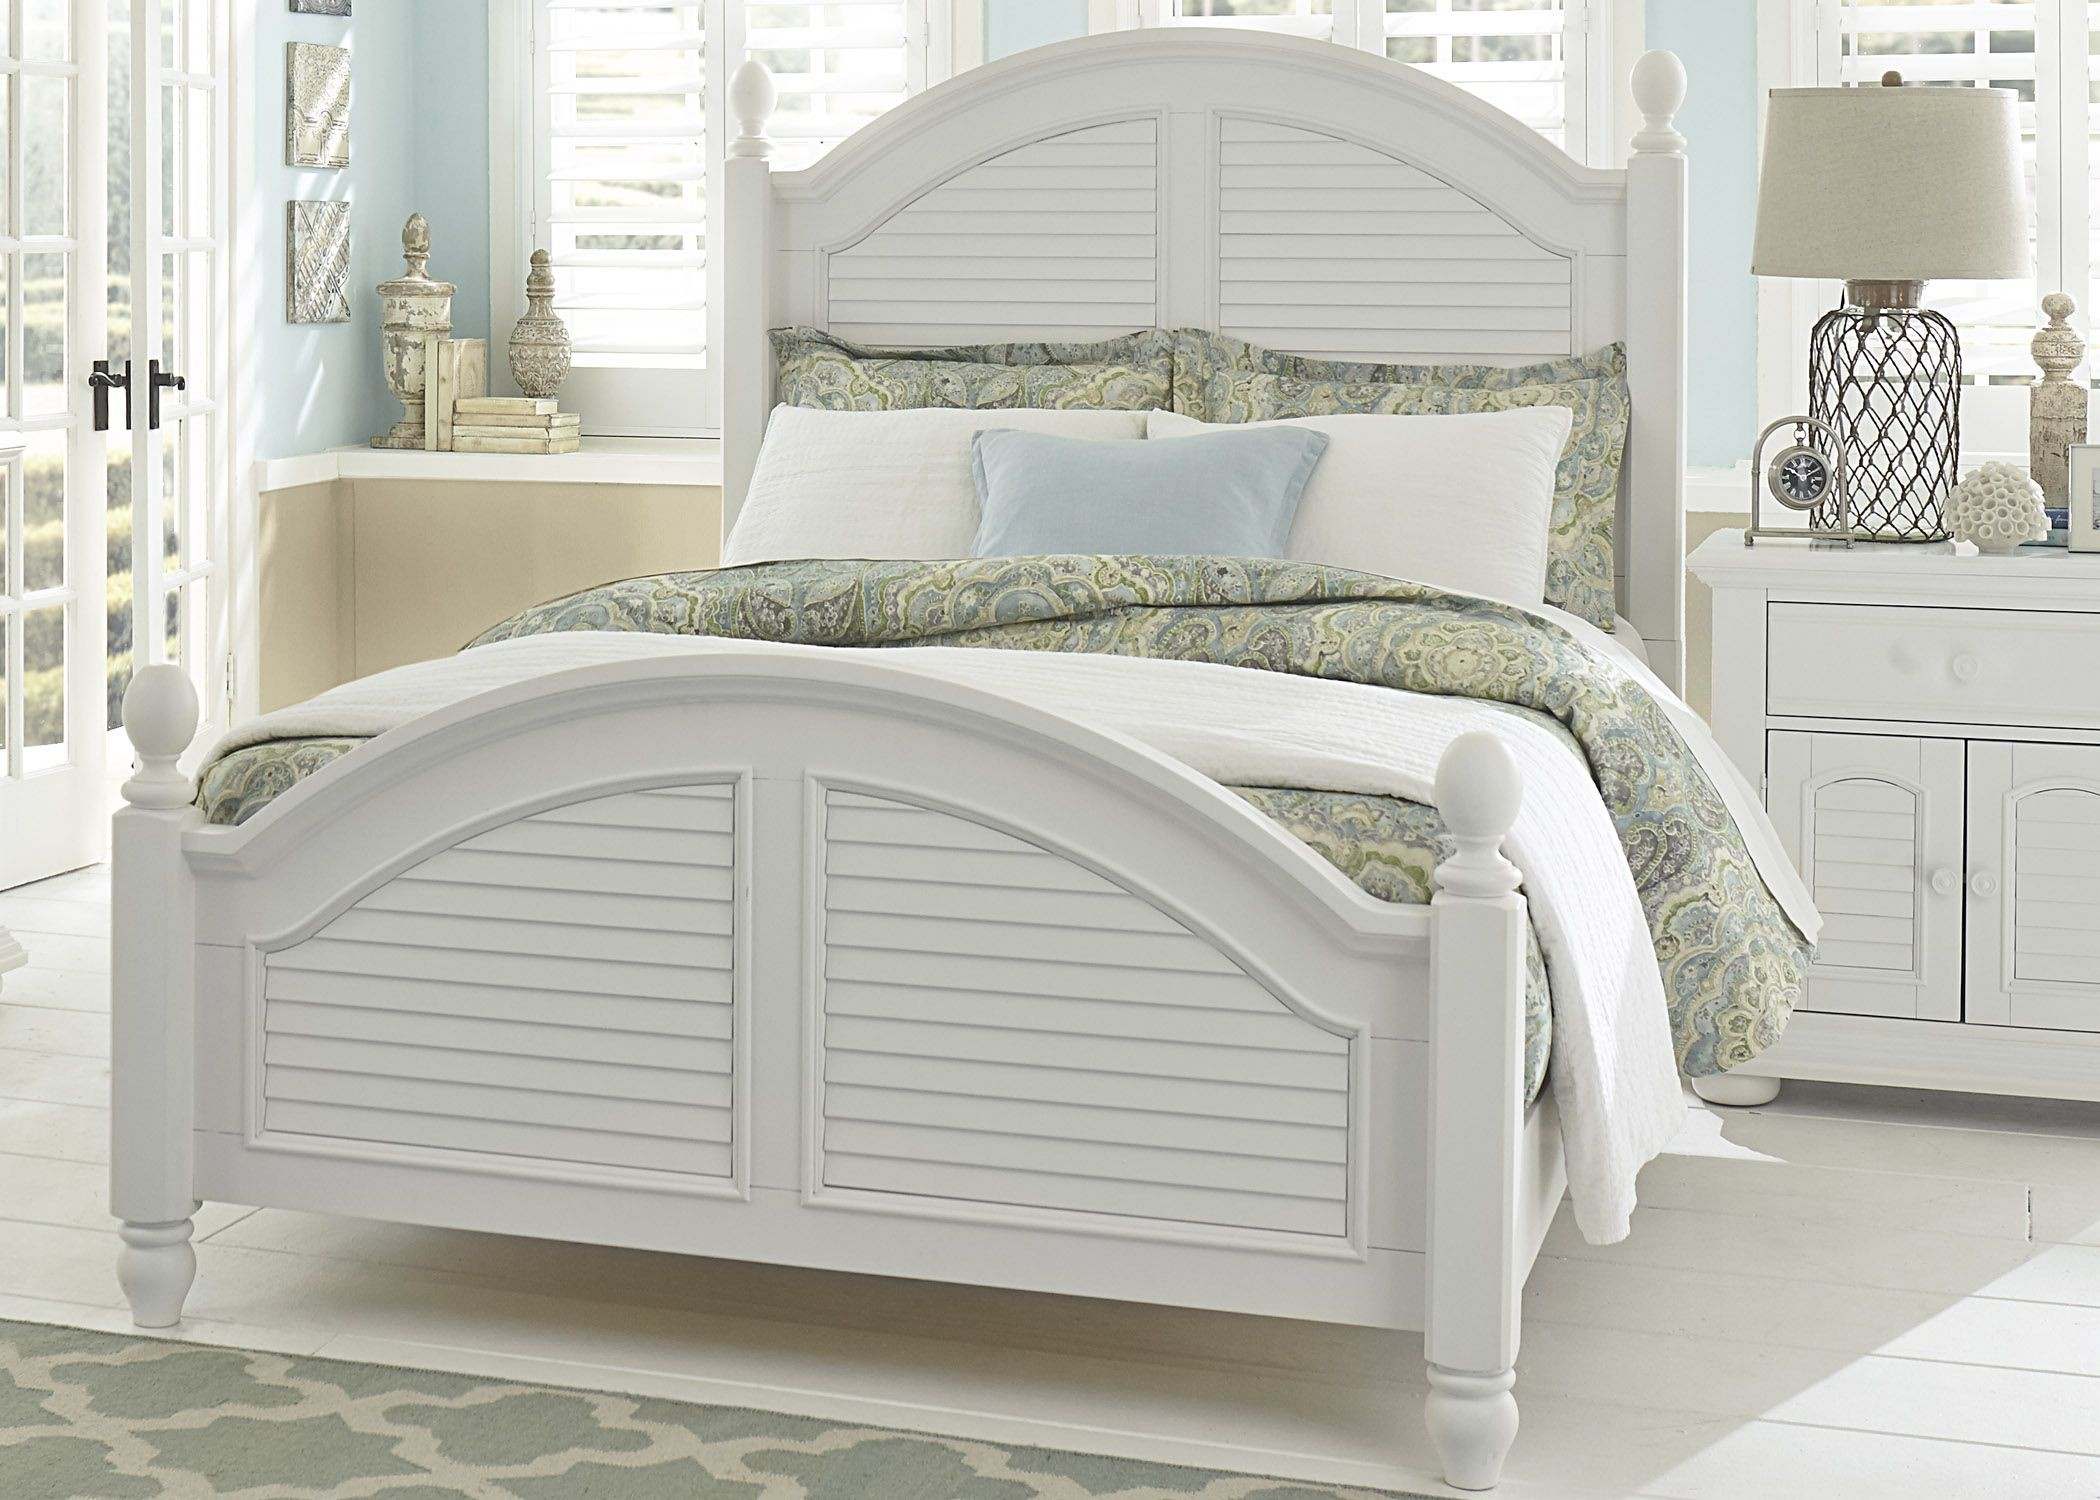 summer house oyster white queen poster bedroom set 607 br